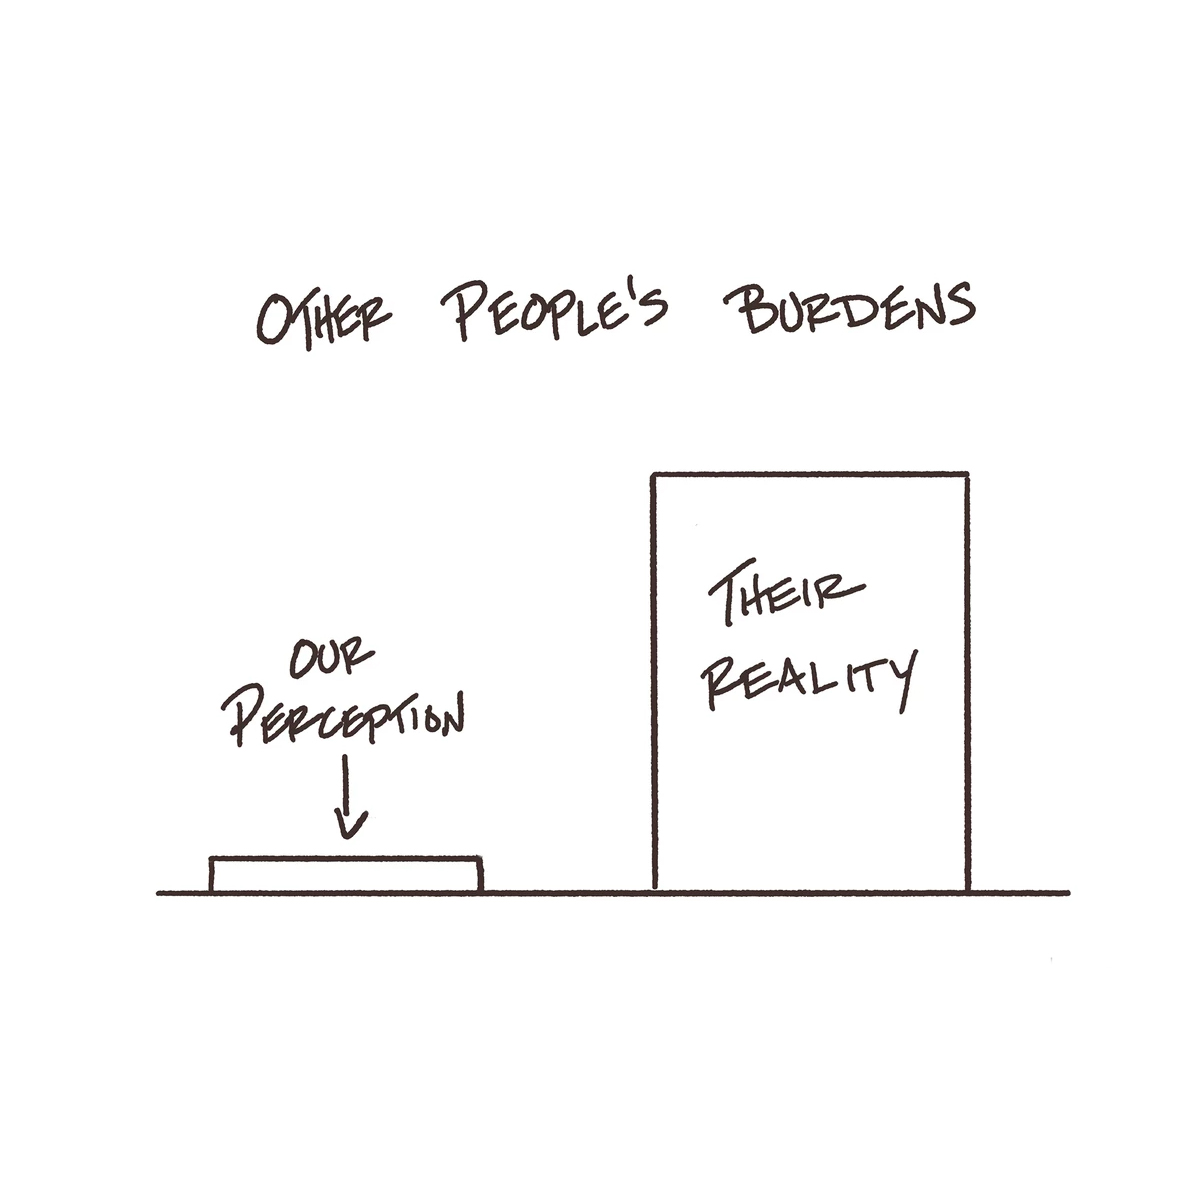 Behavior Gap - Other People's Burdens